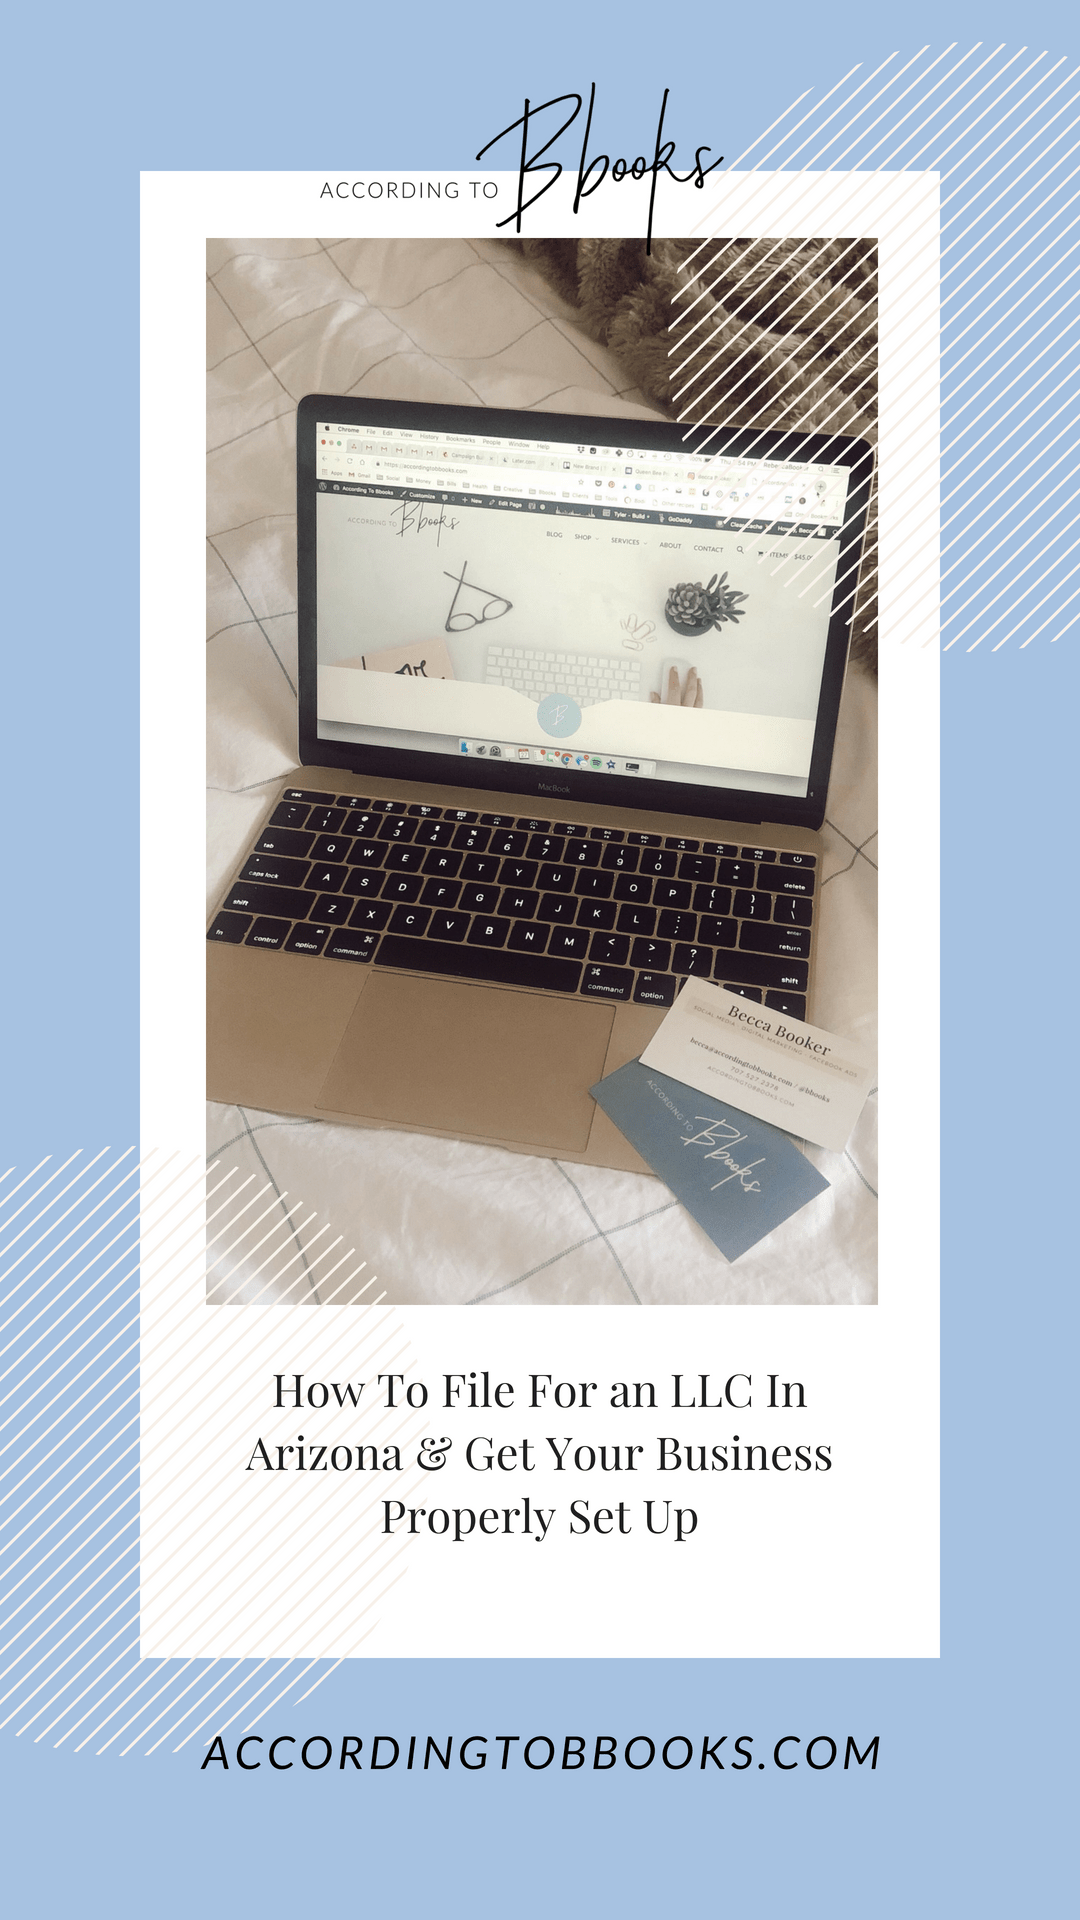 How To File For an LLC In Arizona & Get Your Business Properly Set Up